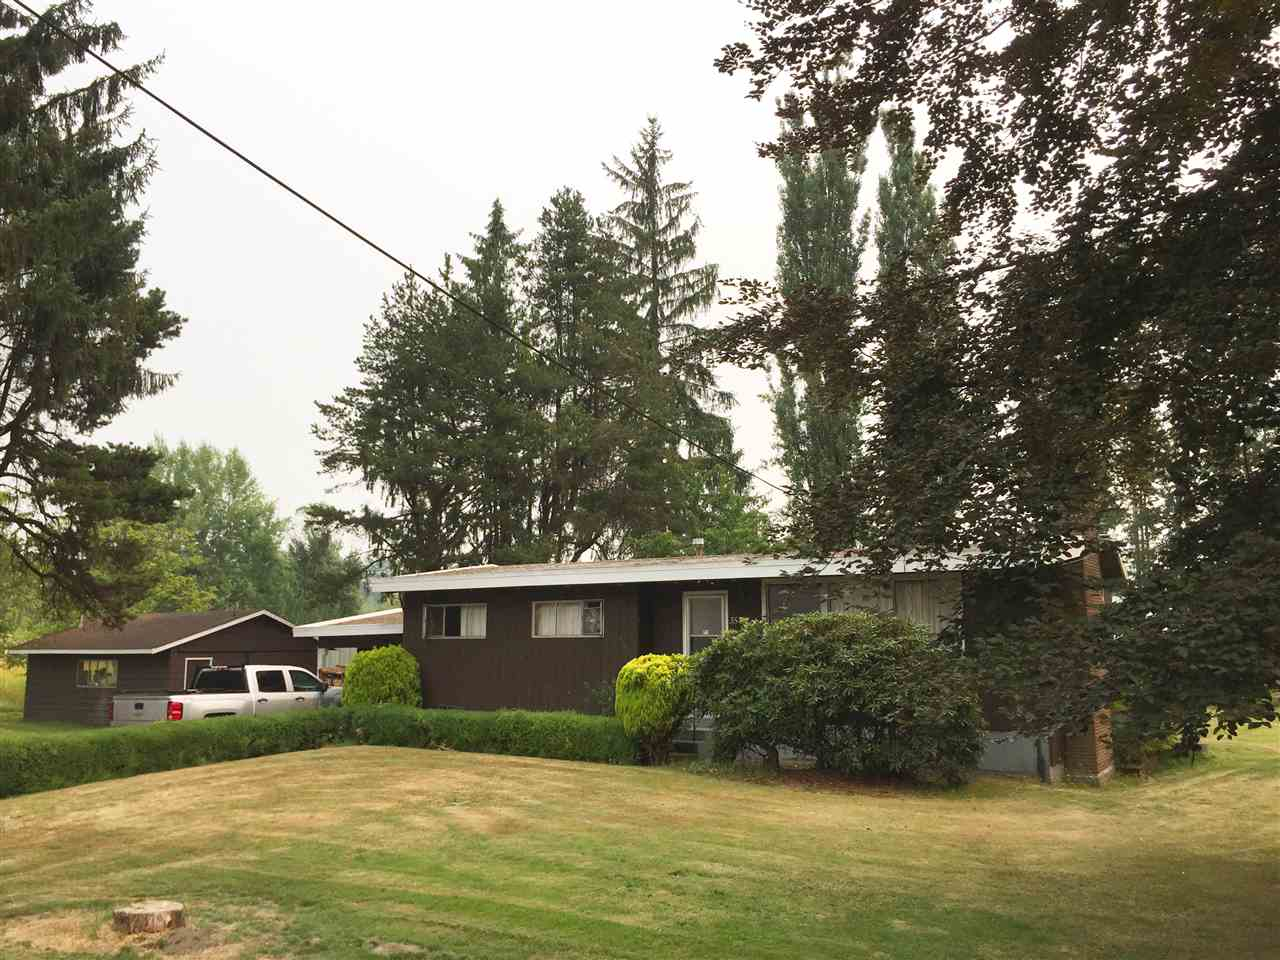 Main Photo: 3534 264 Street in Langley: Aldergrove Langley House for sale : MLS® # R2196093